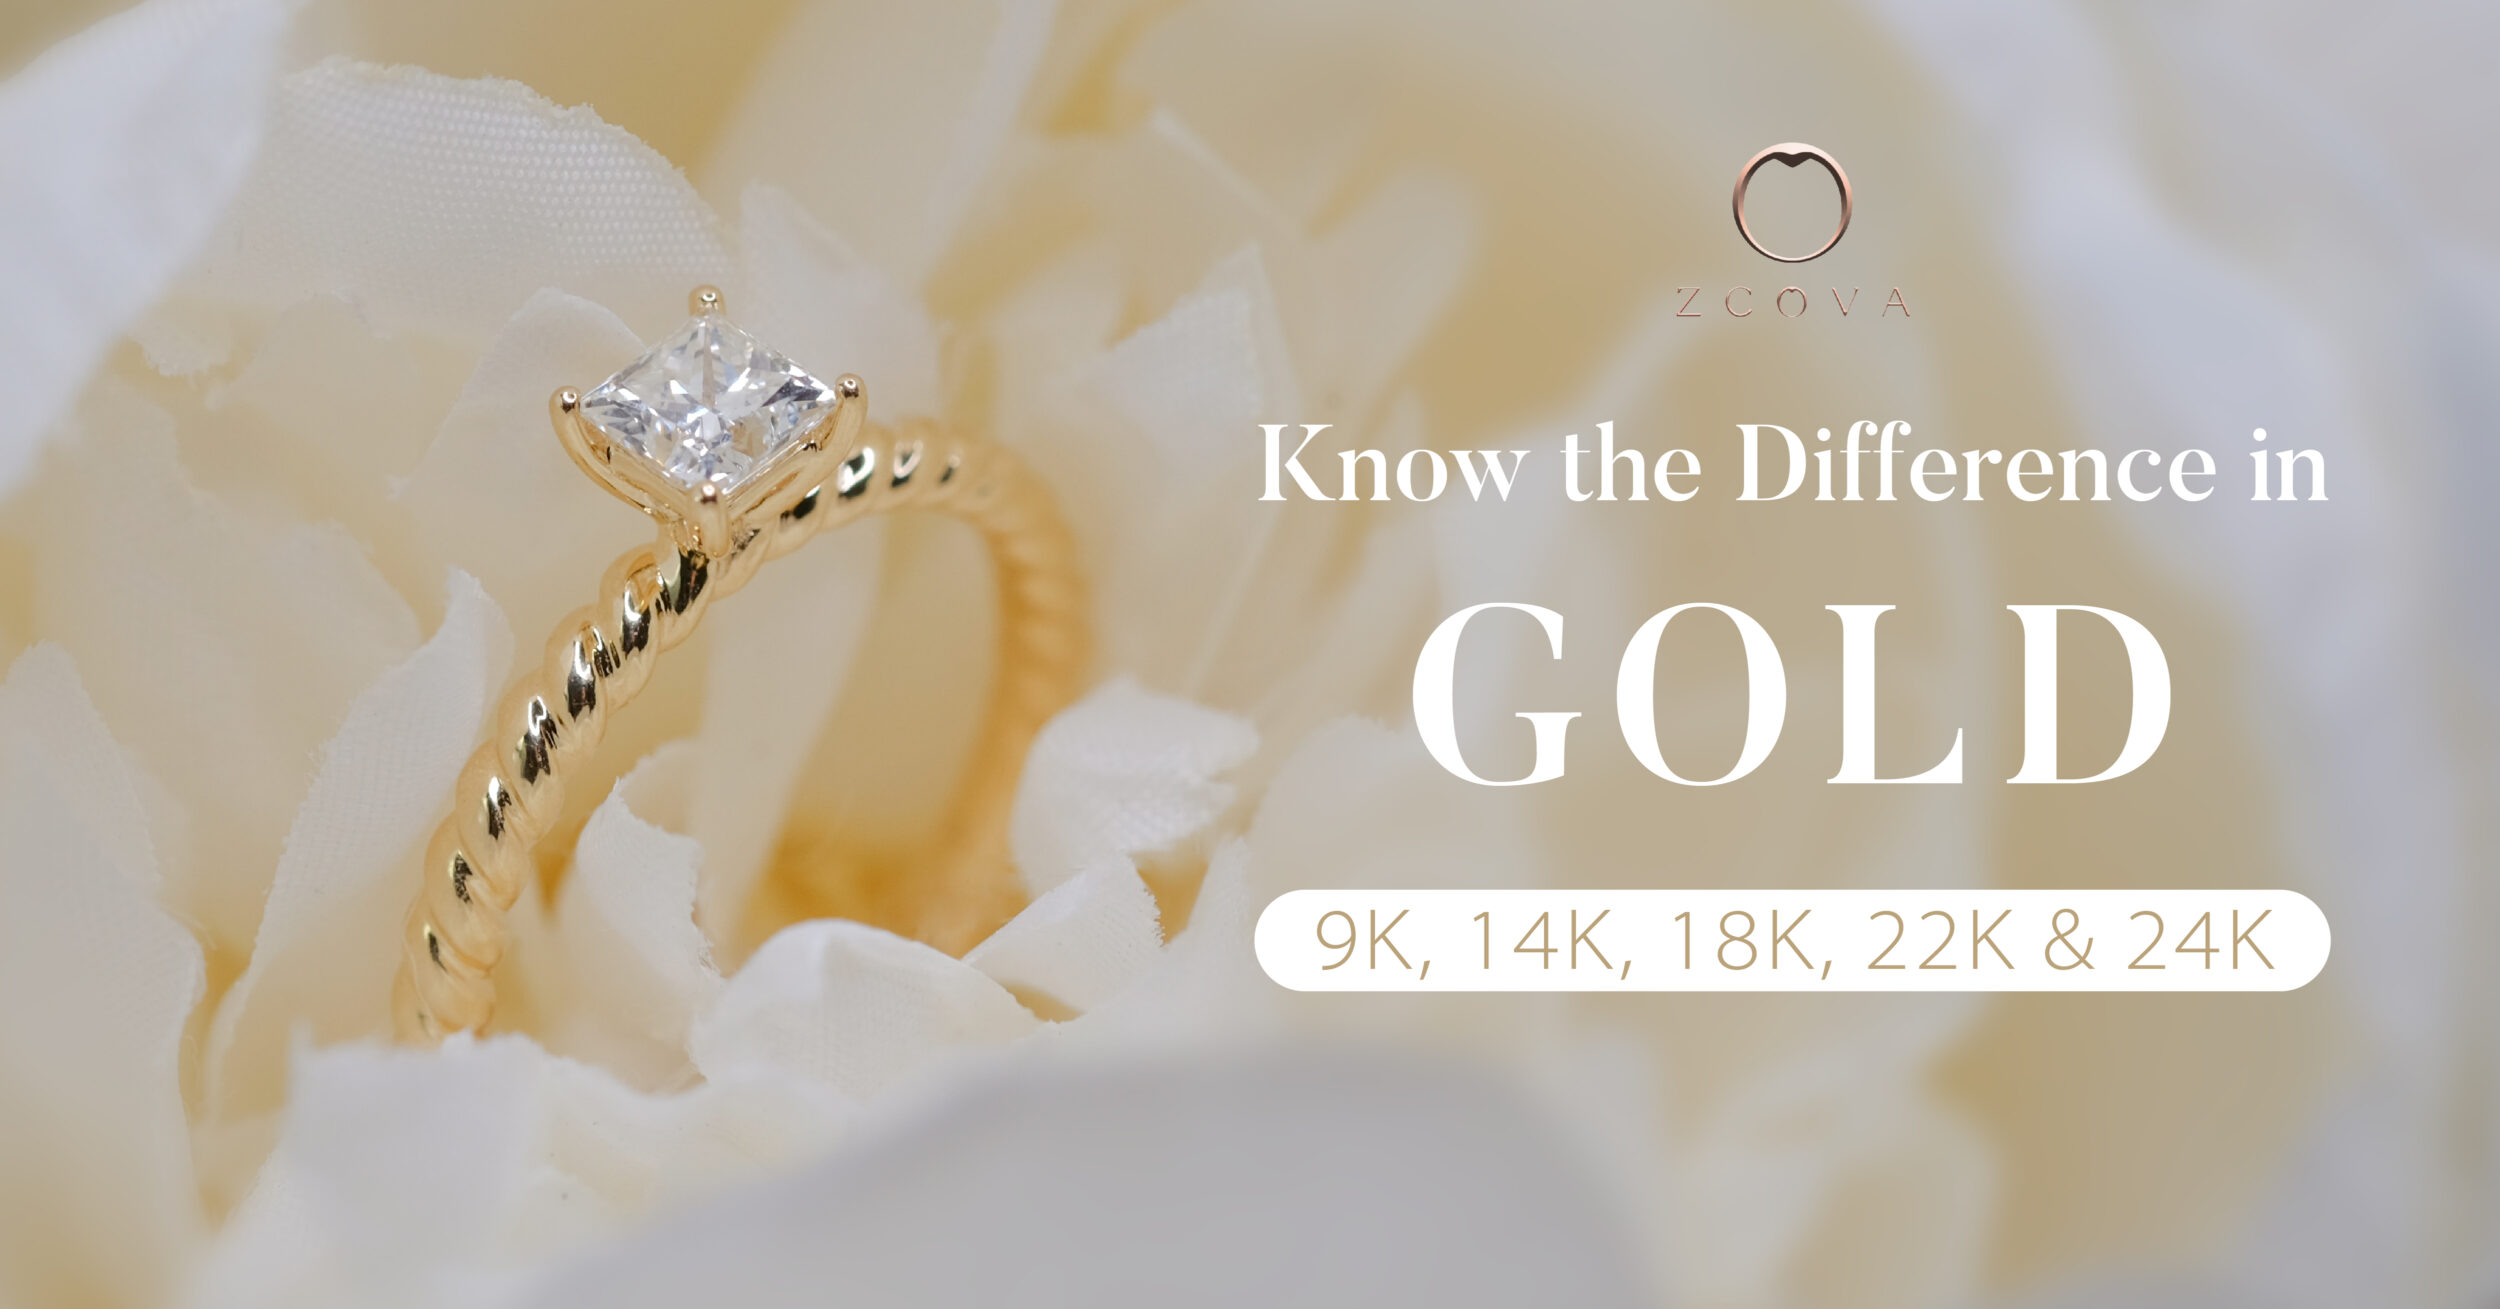 Know the difference in gold, 9K, 14K, 18K, 22K, 24K